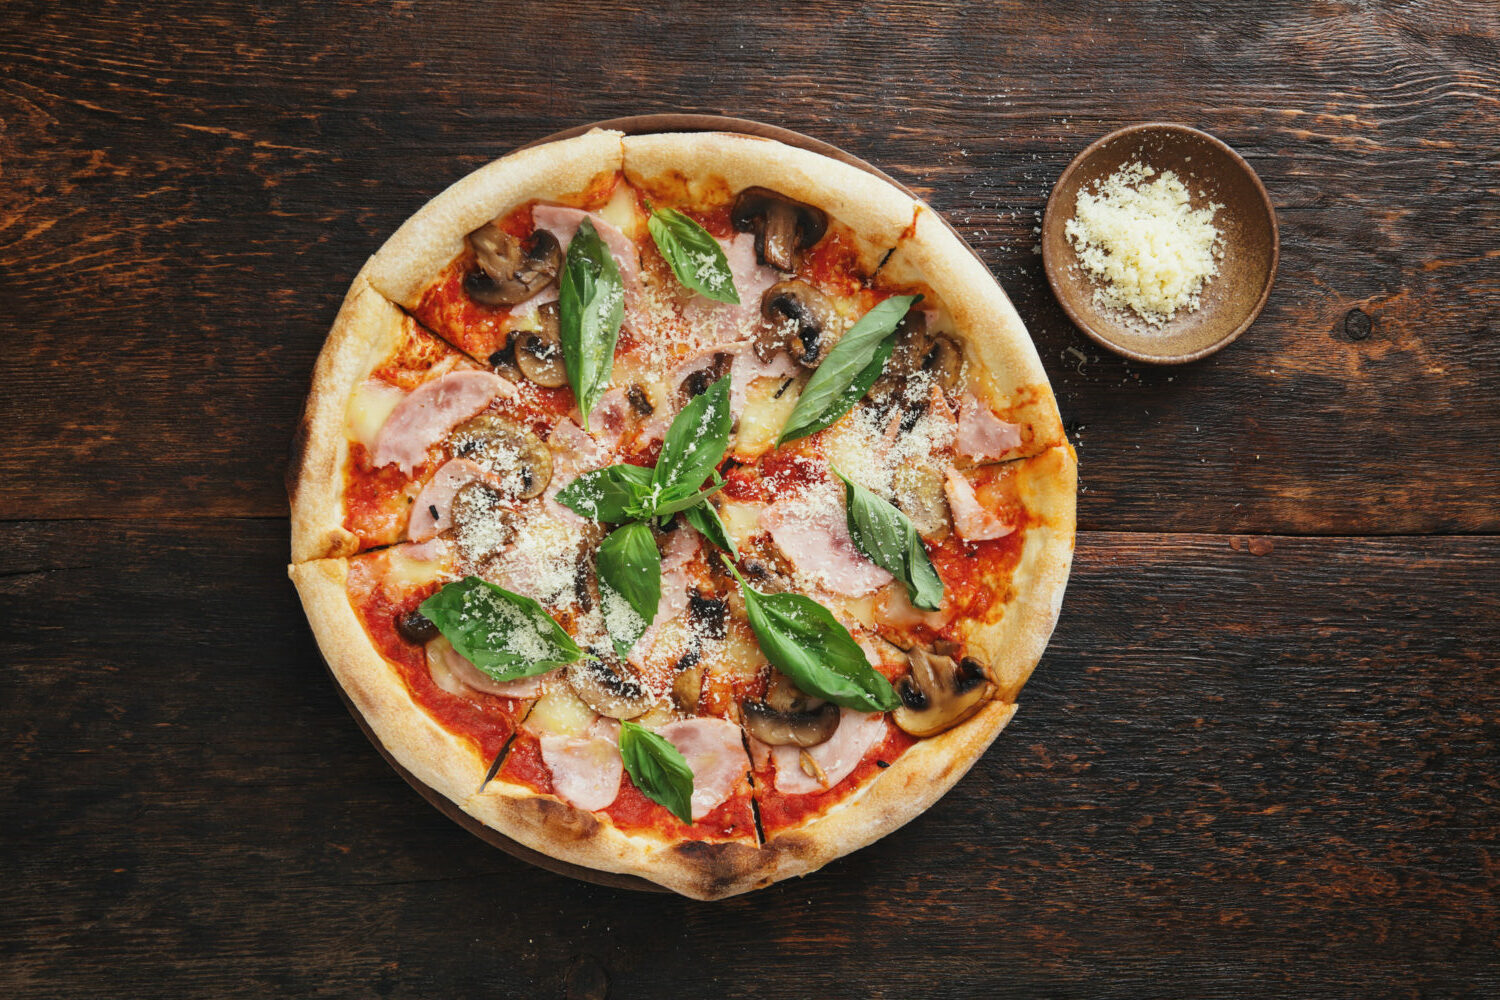 Pizza with ham, mozzarella, mushrooms, herbs